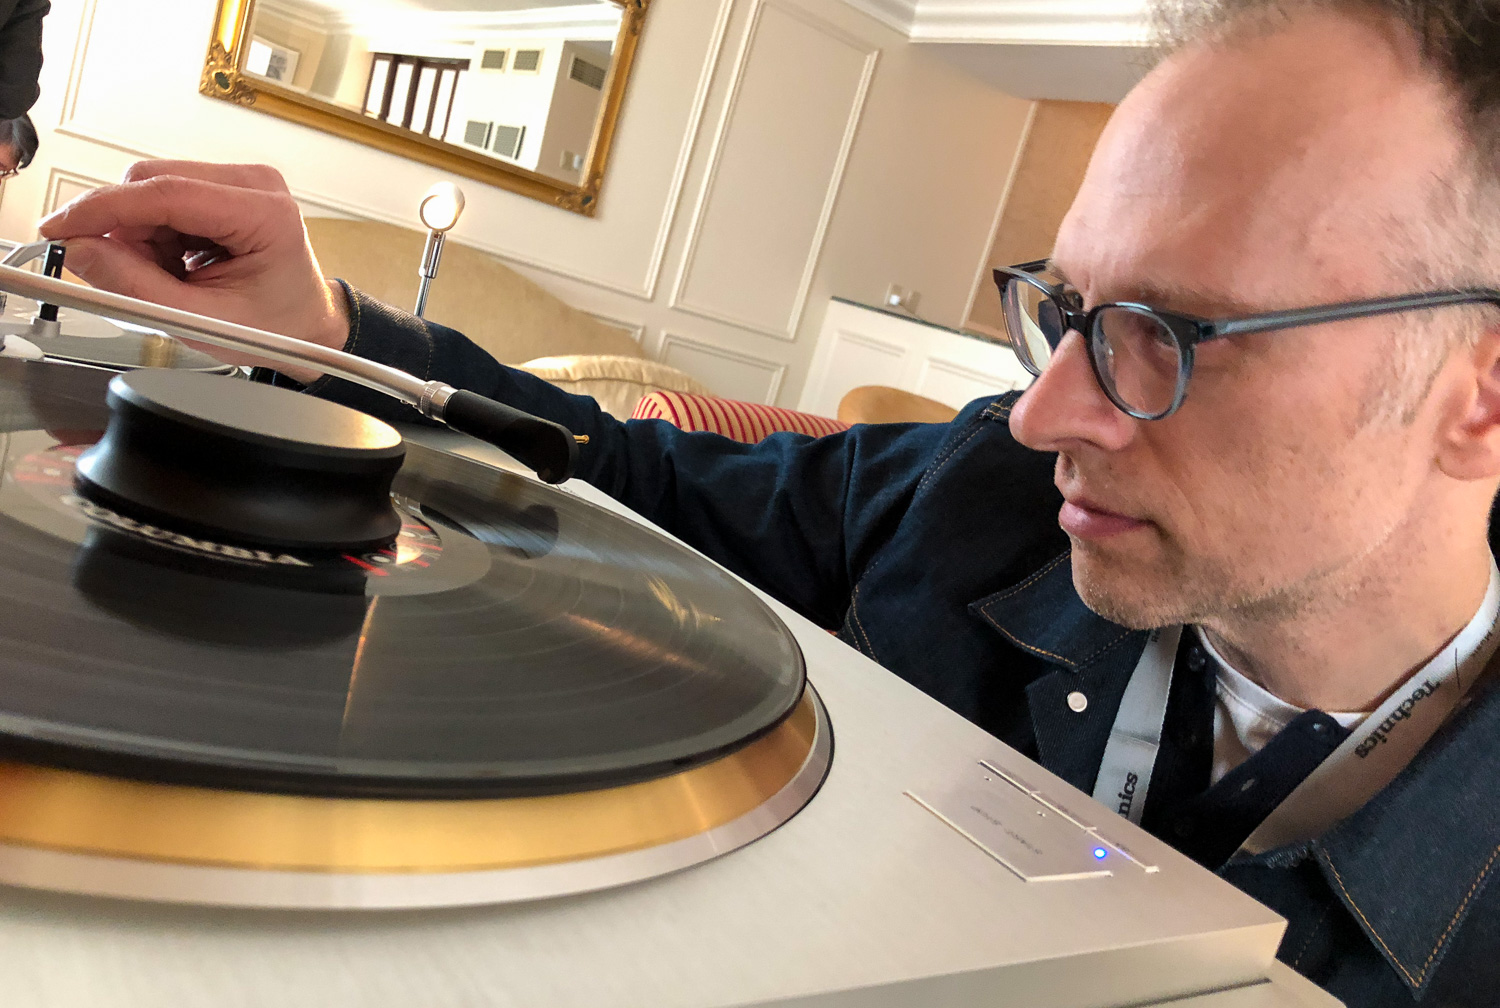 Michael Graves checking out the SL-1000R